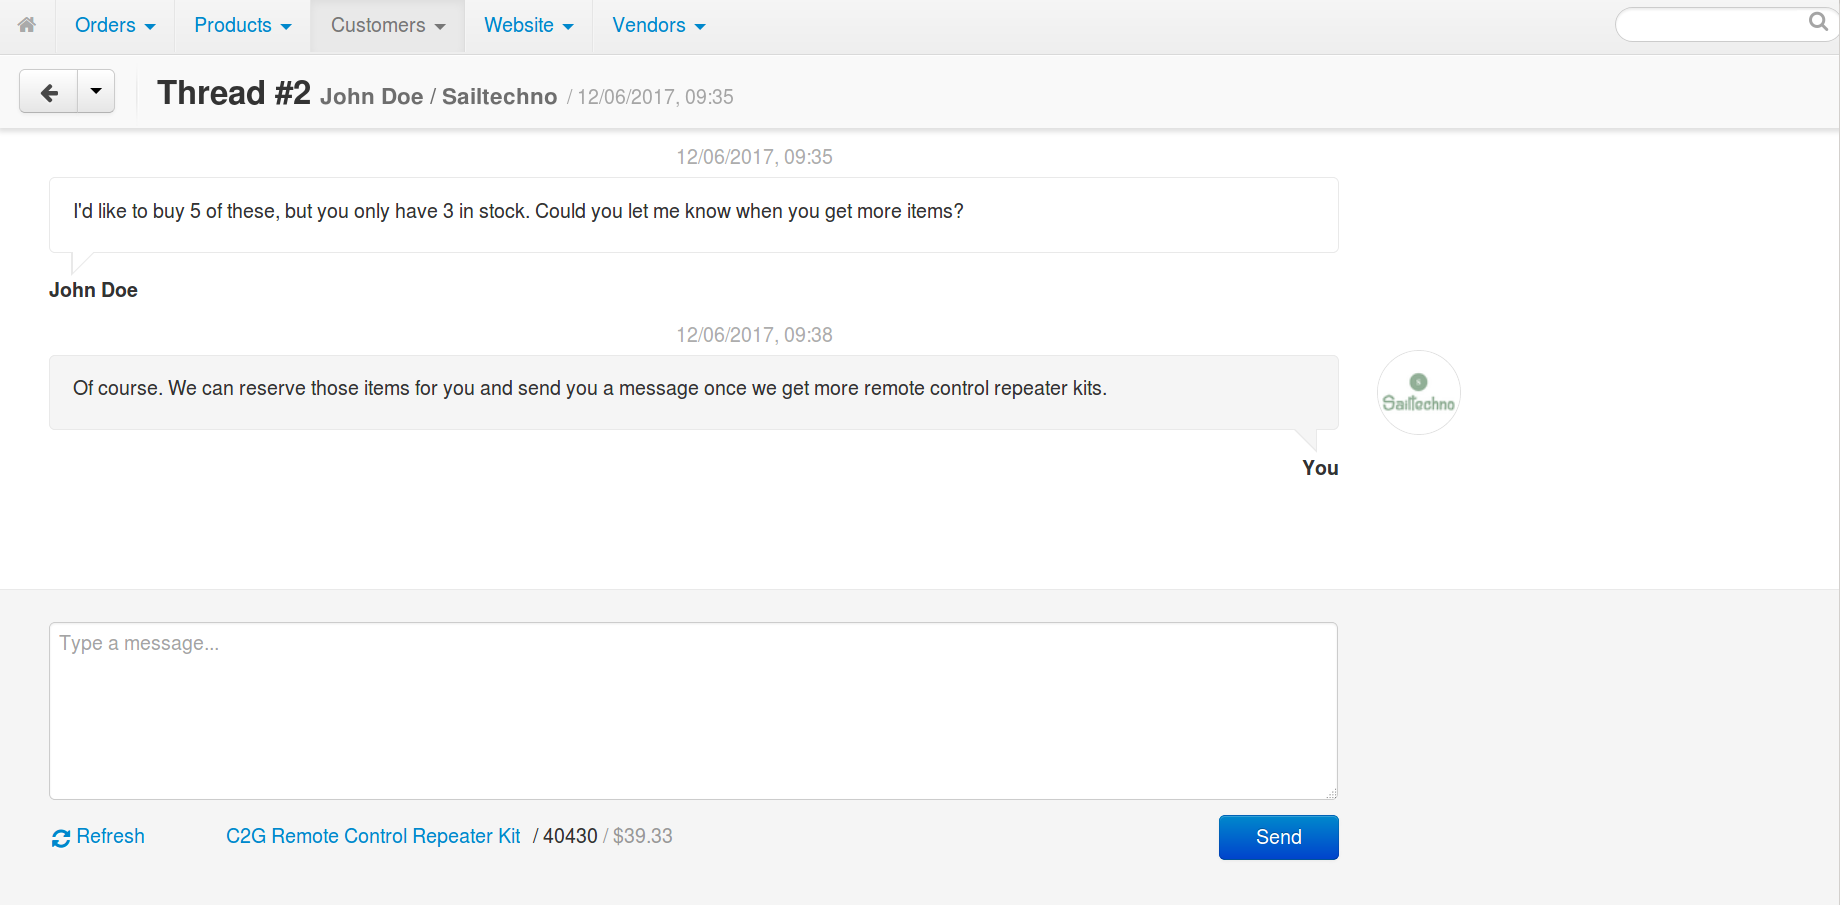 Replying to customer's message in Multi-Vendor.